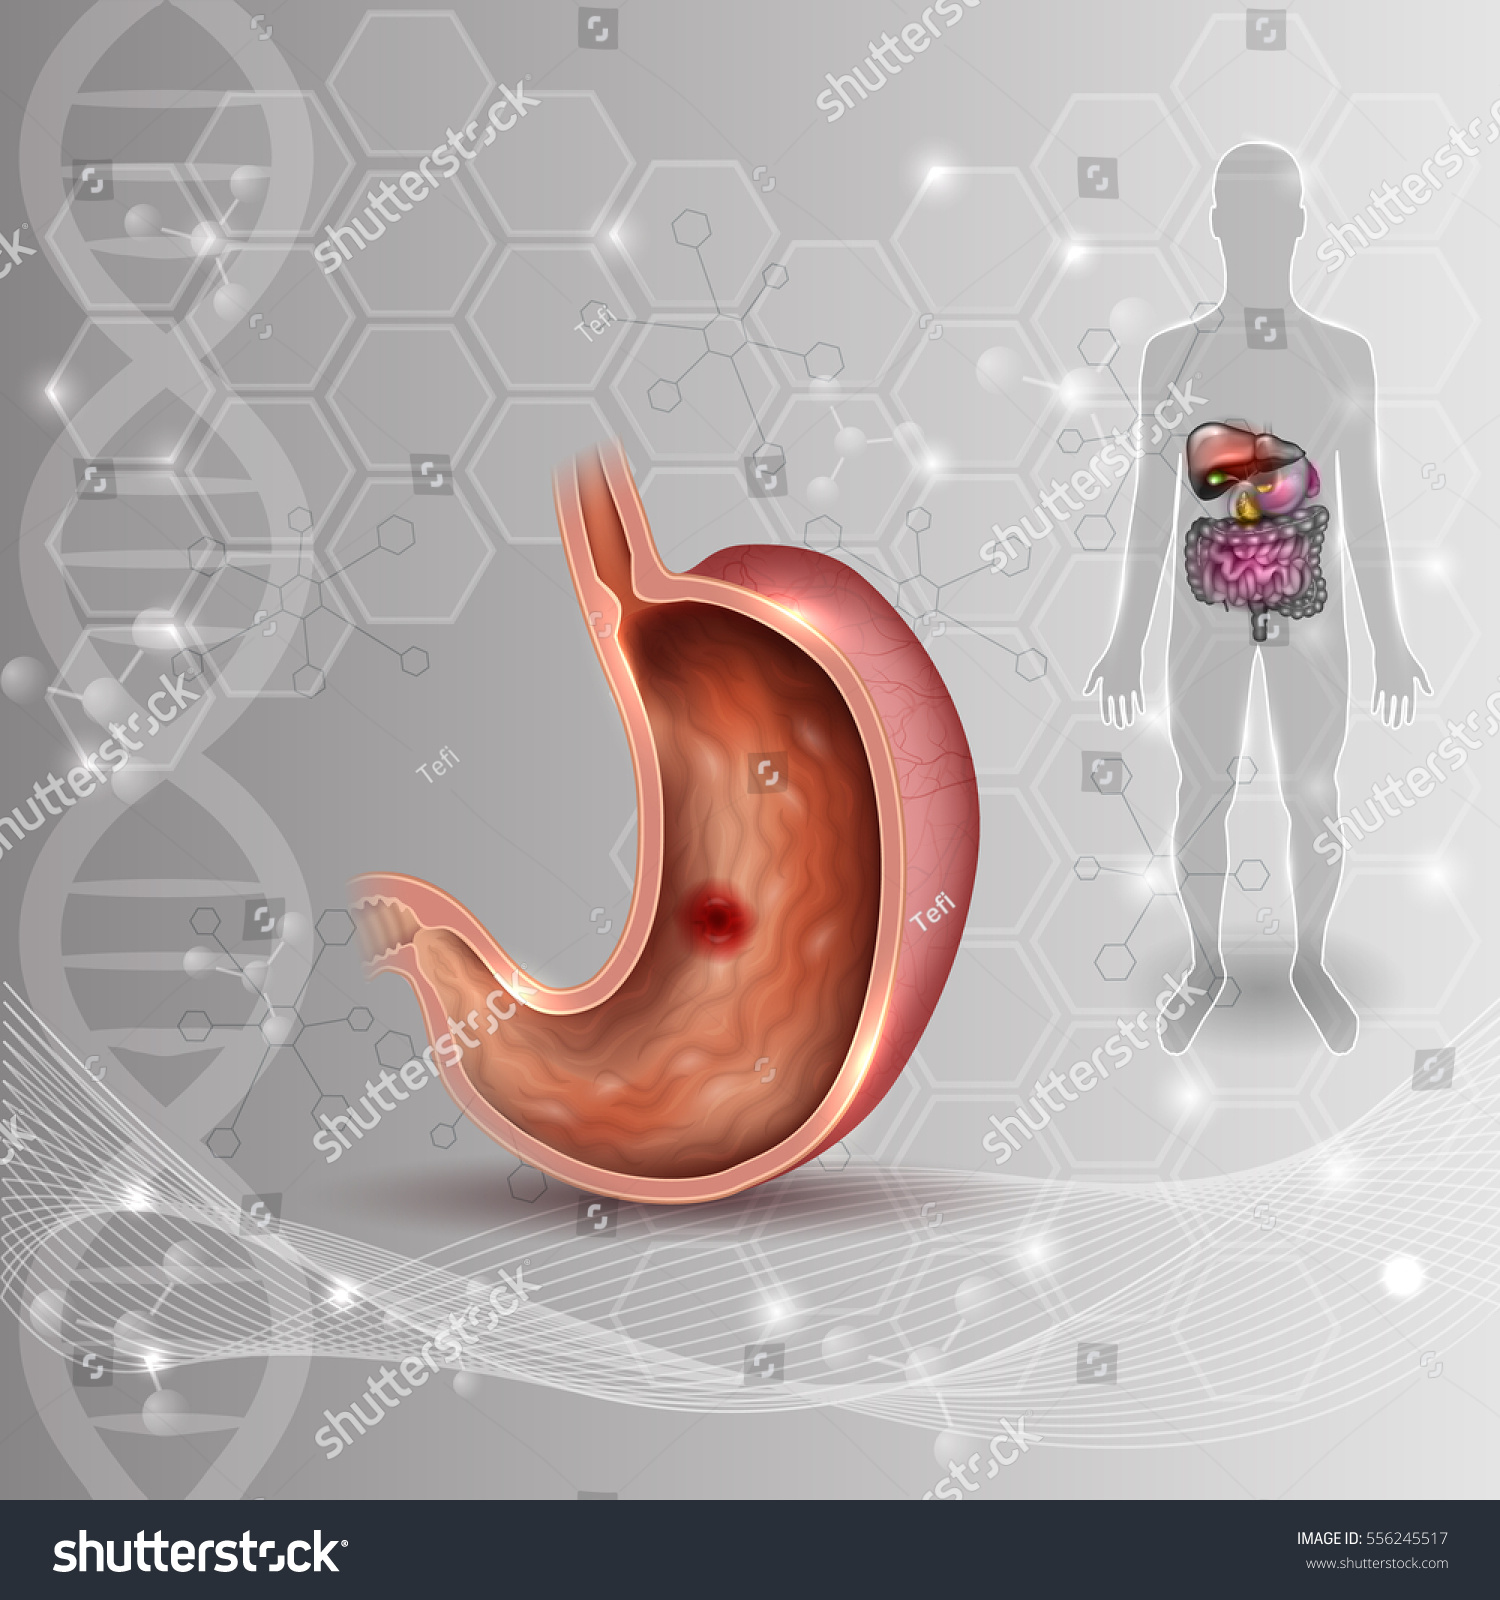 Stomach Ulcer Internal Organs Anatomy Colorful Stock Vector ...